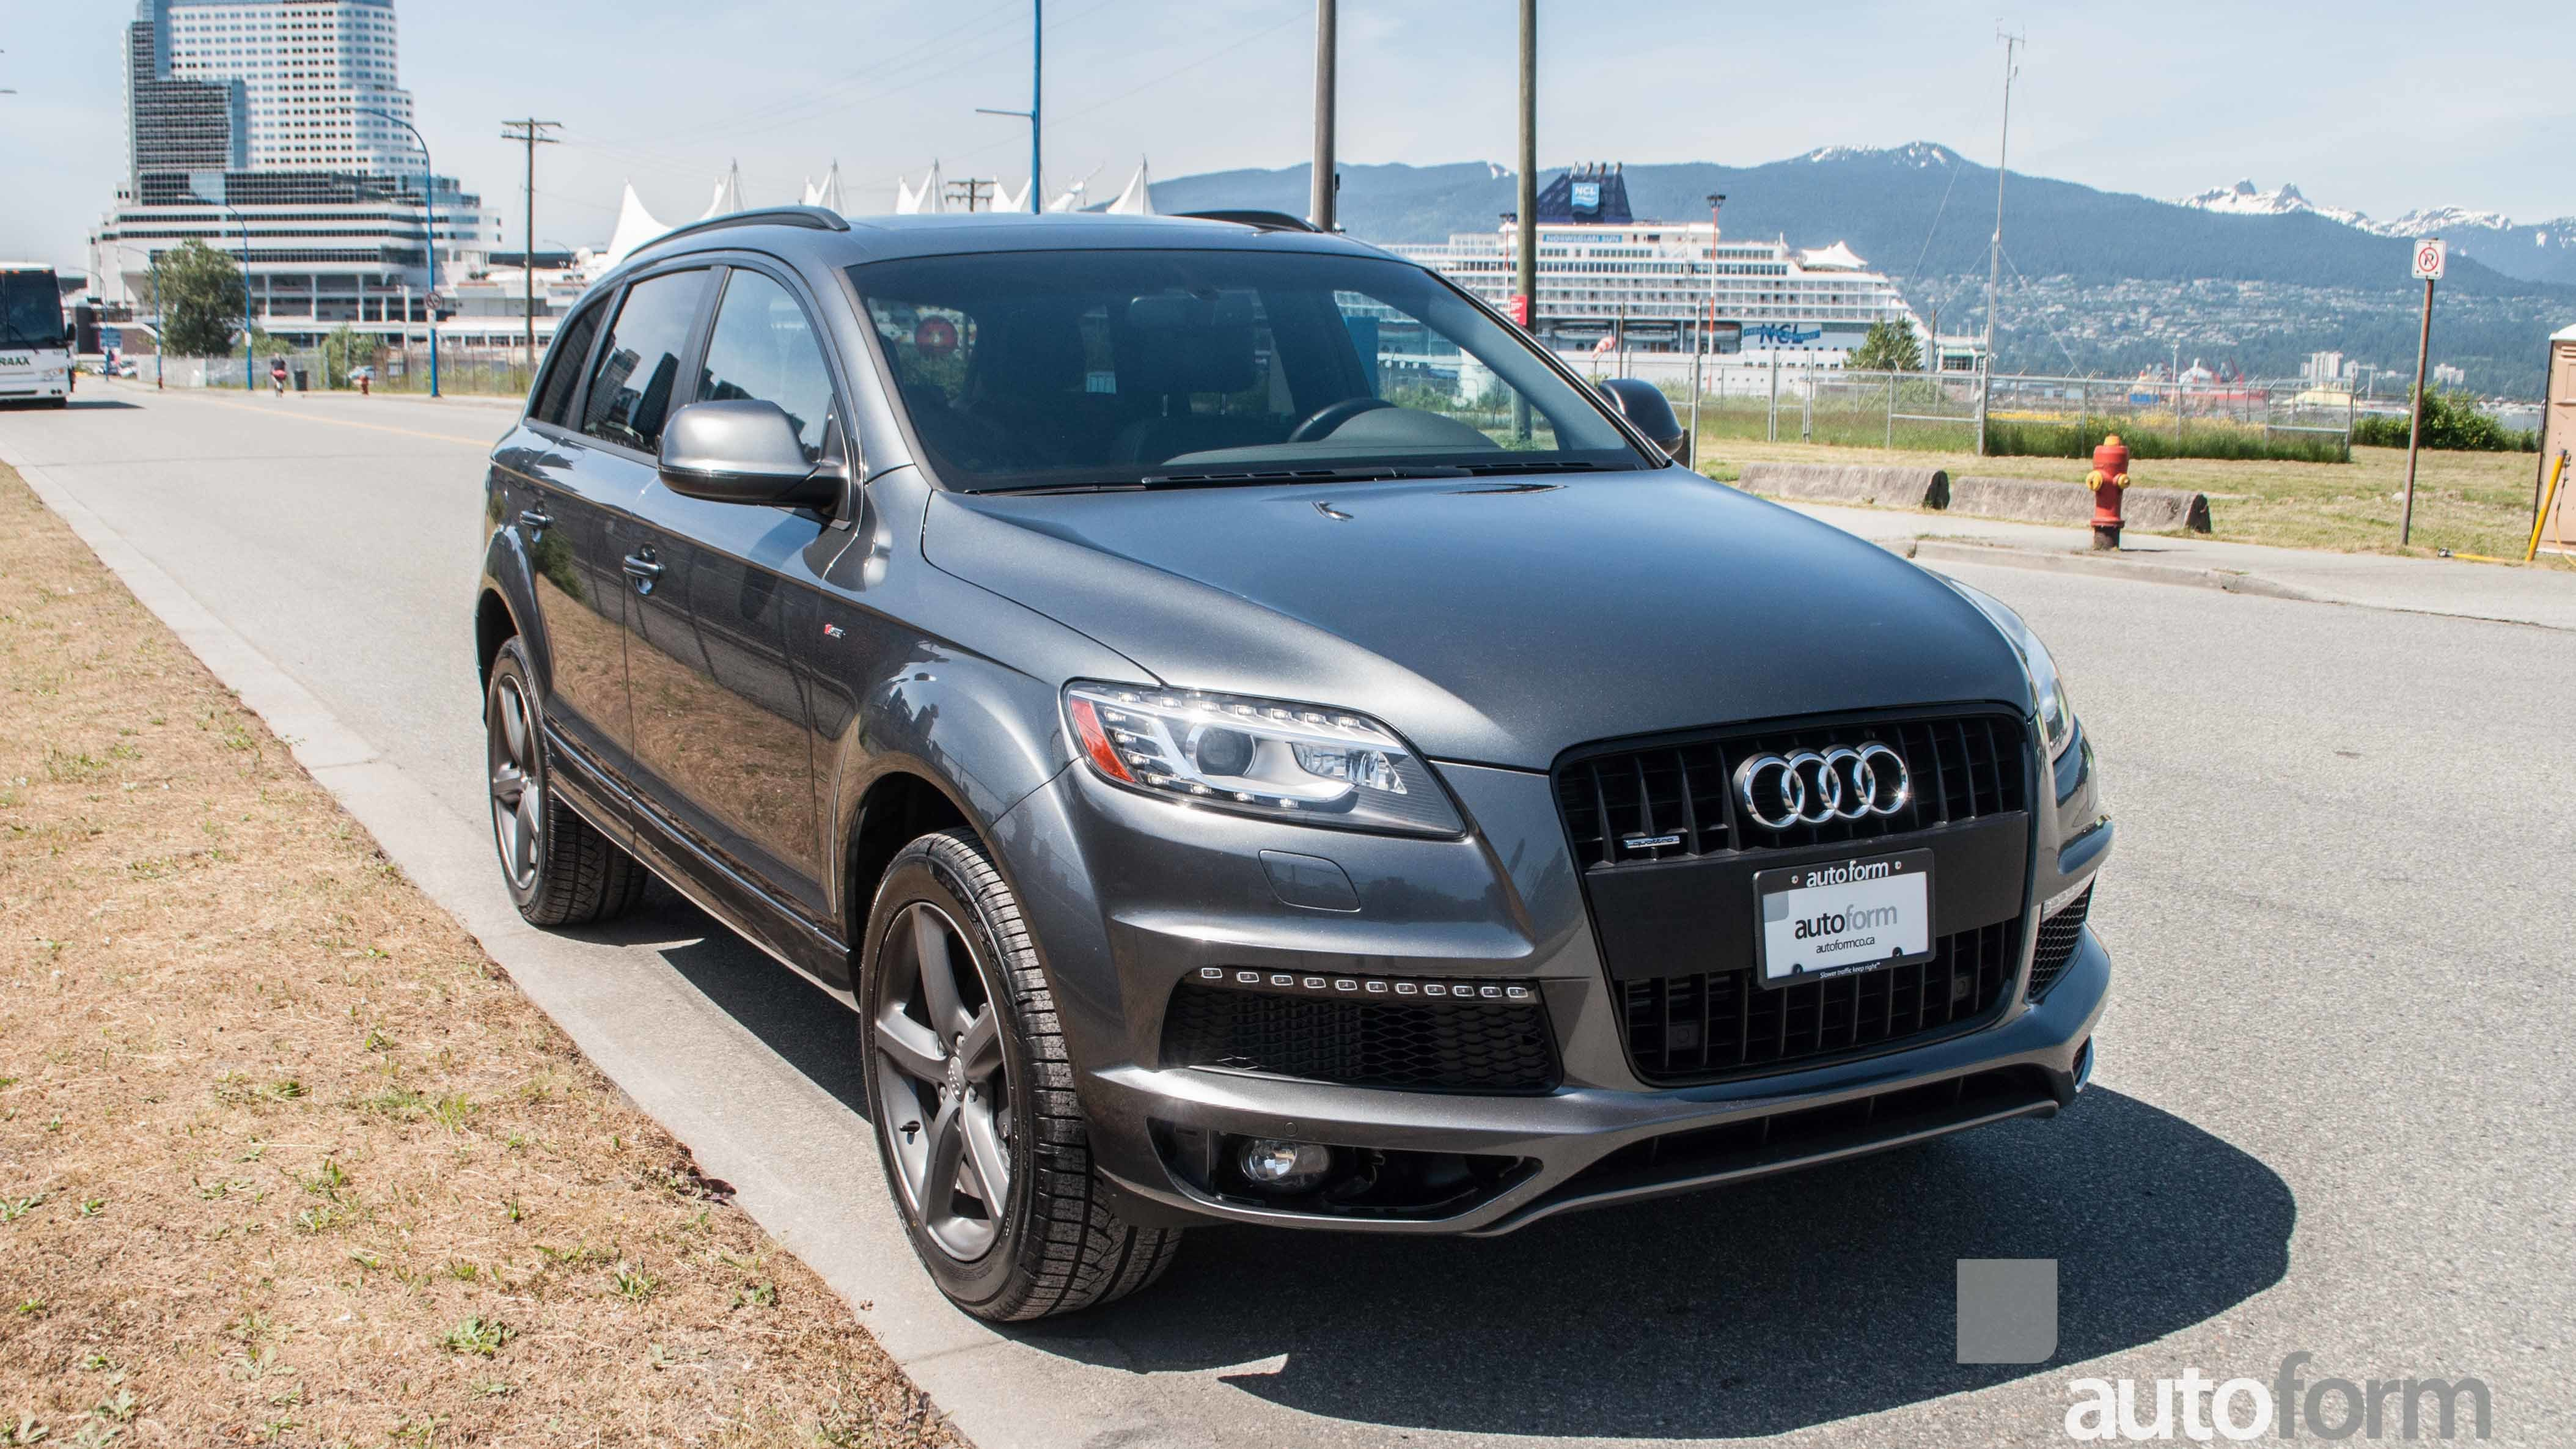 2014 audi q7 s line autoform. Black Bedroom Furniture Sets. Home Design Ideas